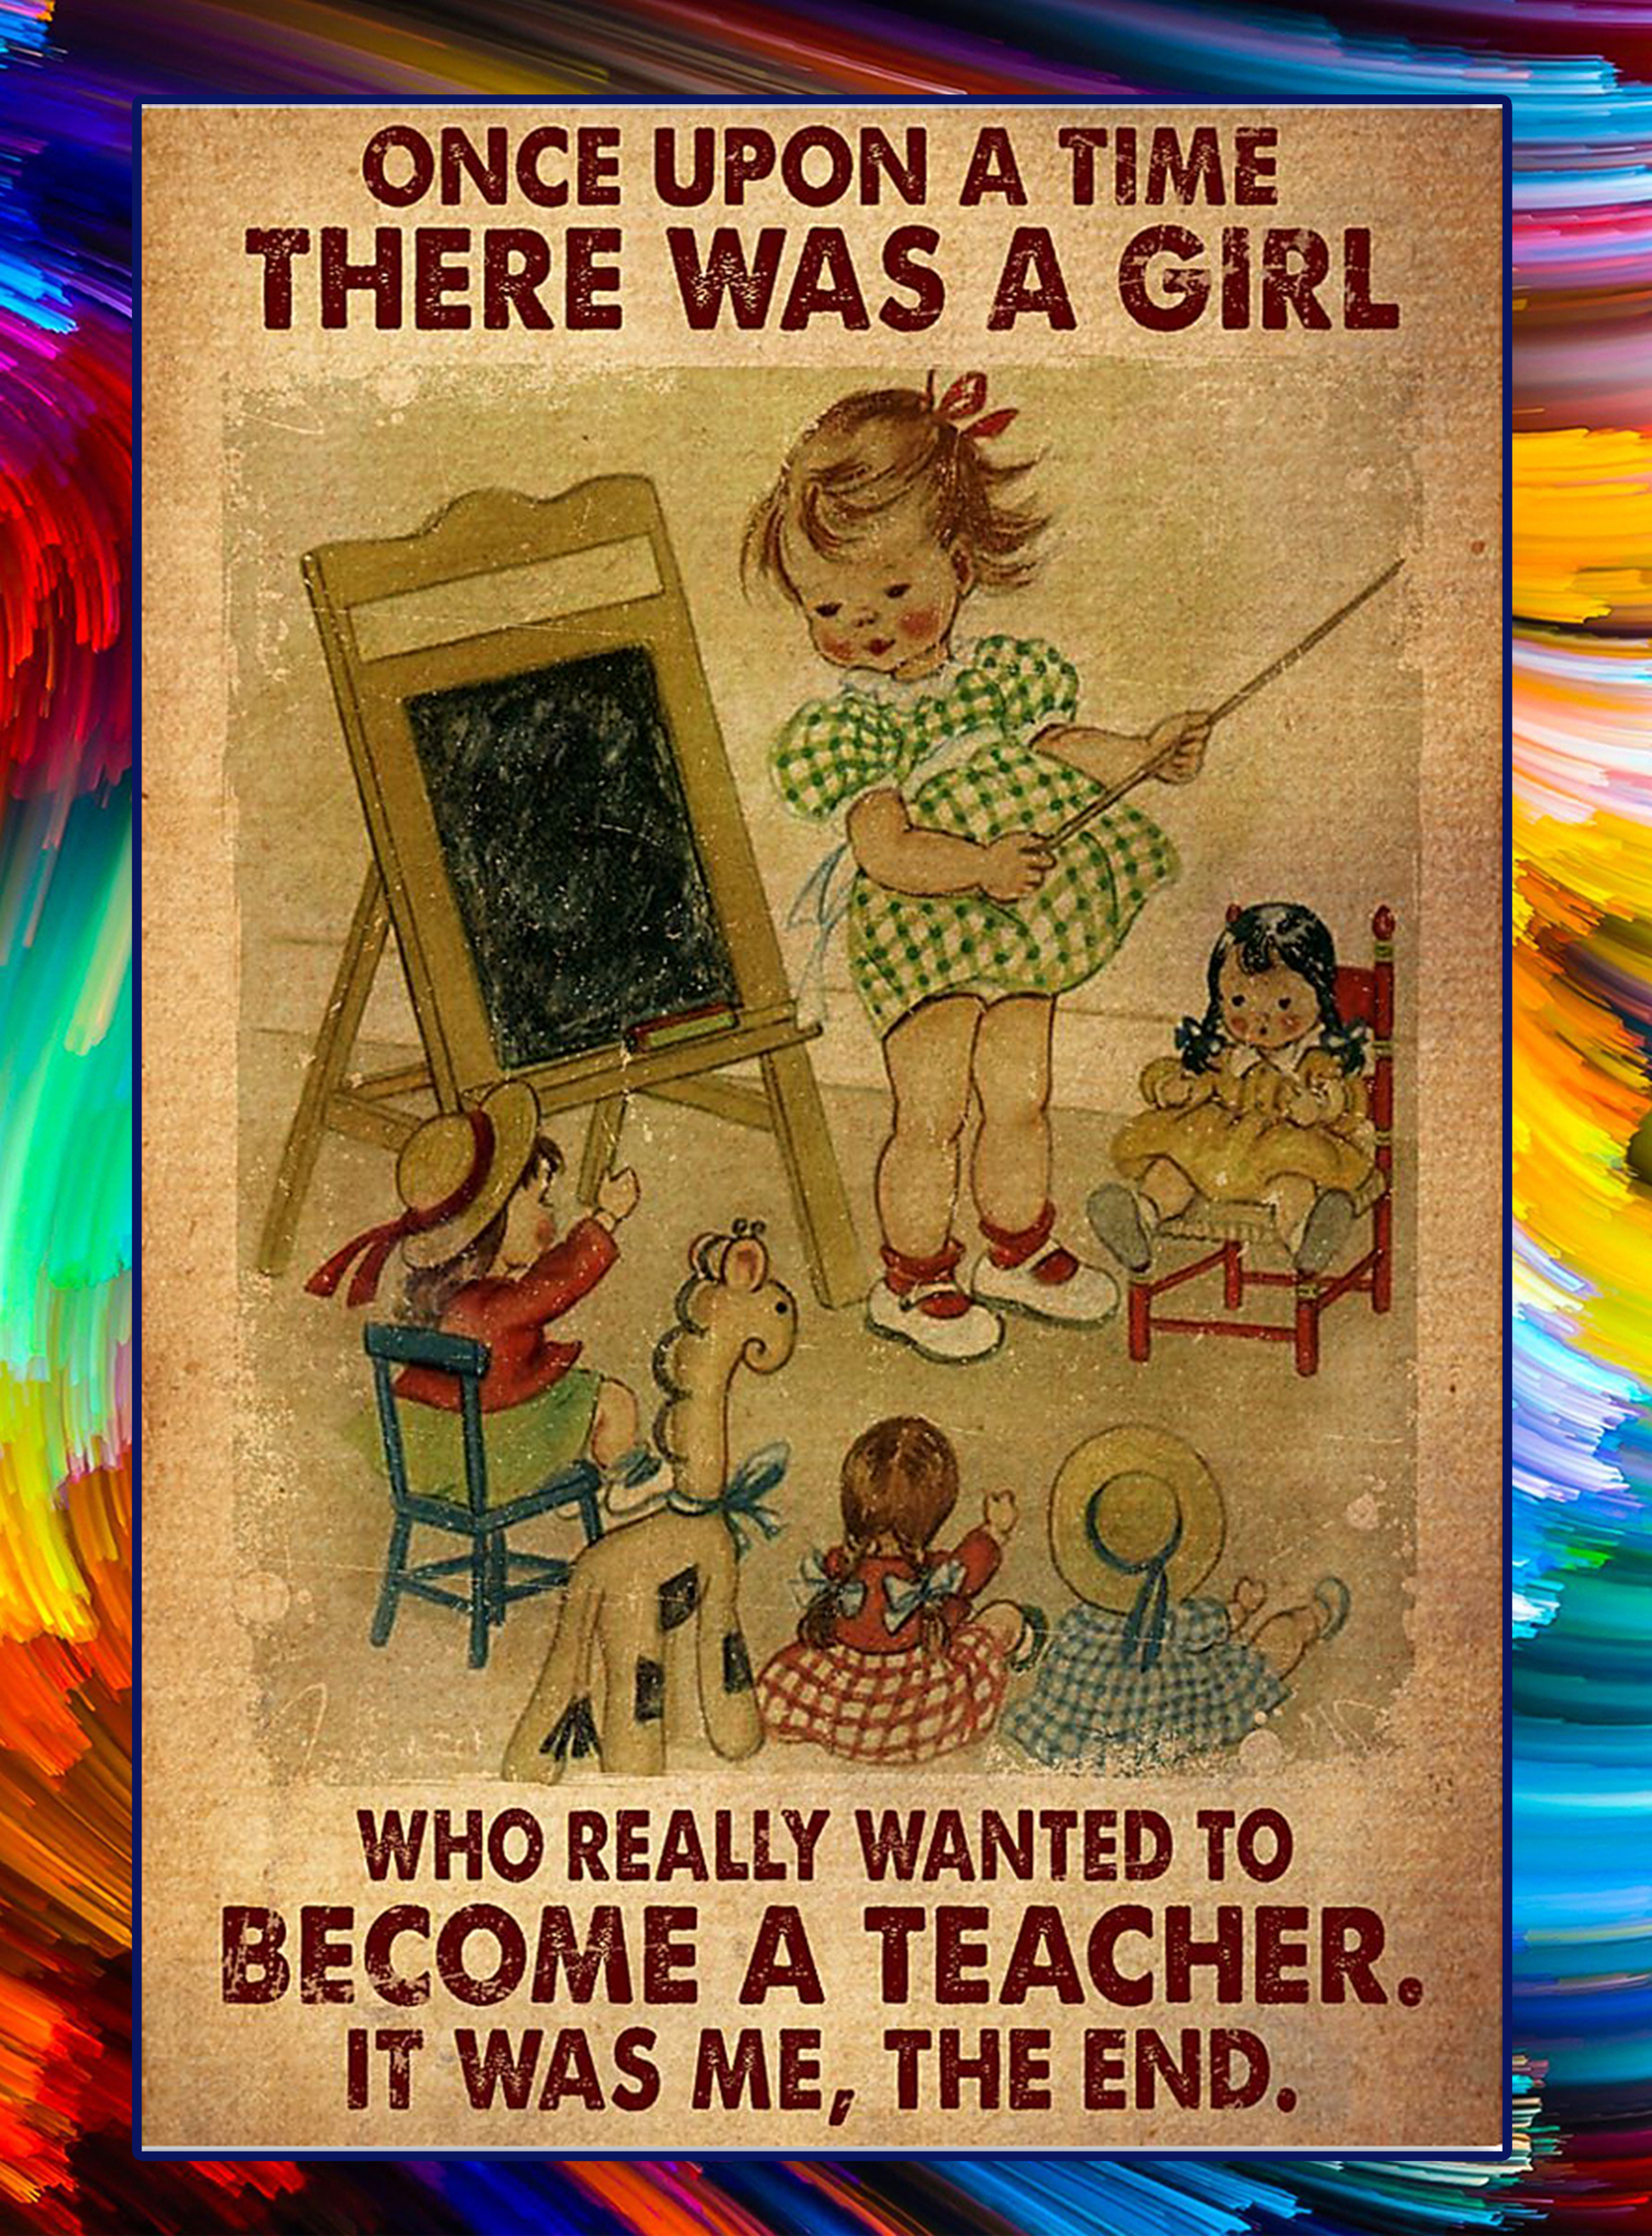 Once upon a time there was a girl wanted to become a teacher poster - A3